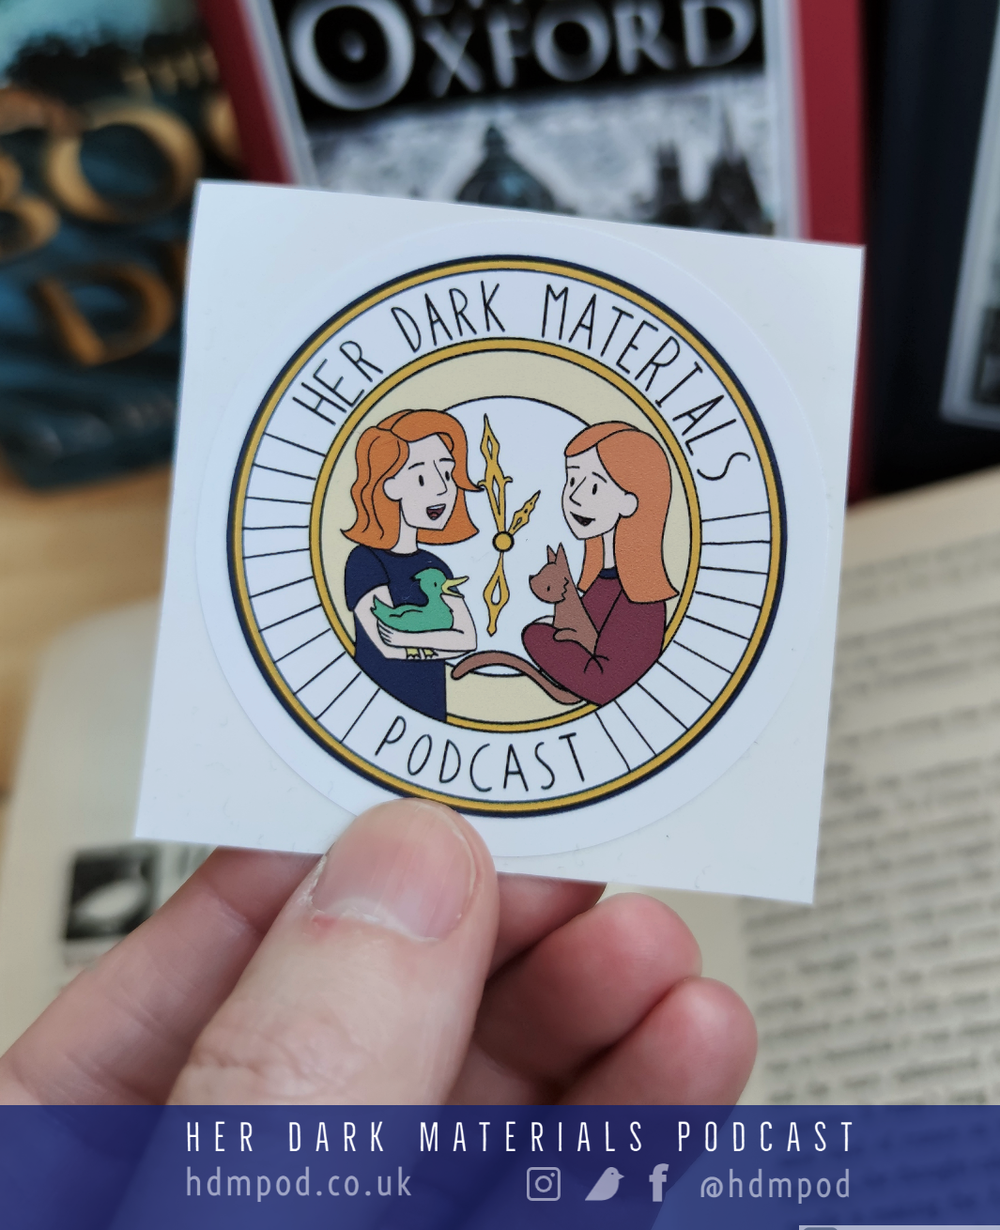 Image of Her Dark Materials Podcast logo sticker